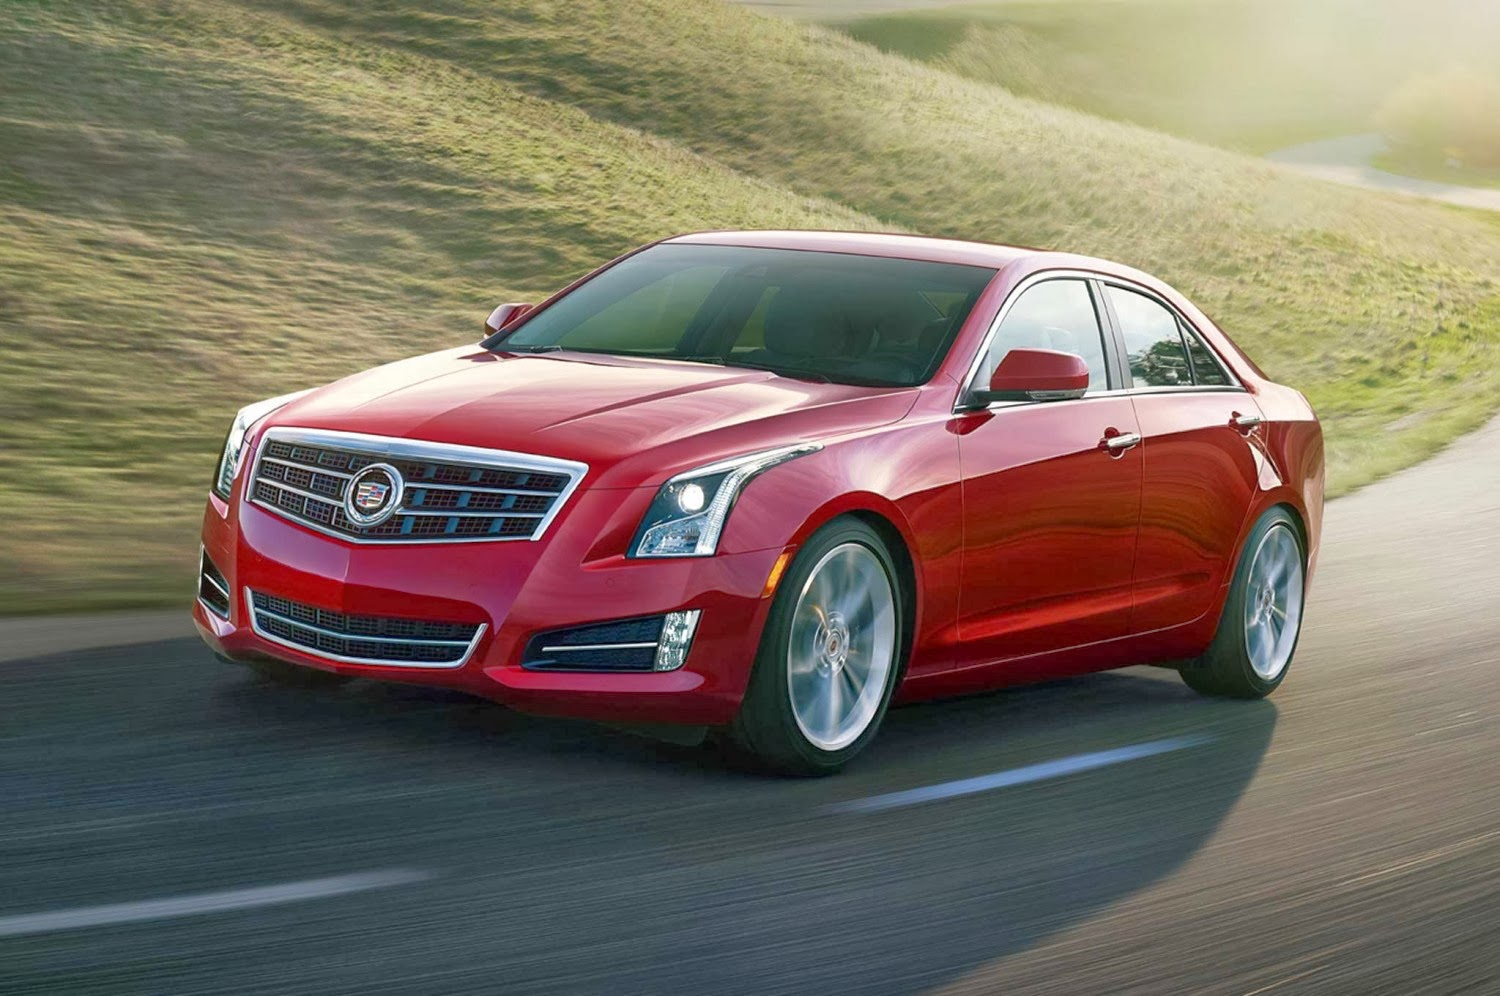 2014 Top 10 Luxury Sedans: 10 Best Luxury Cars Under $40,000